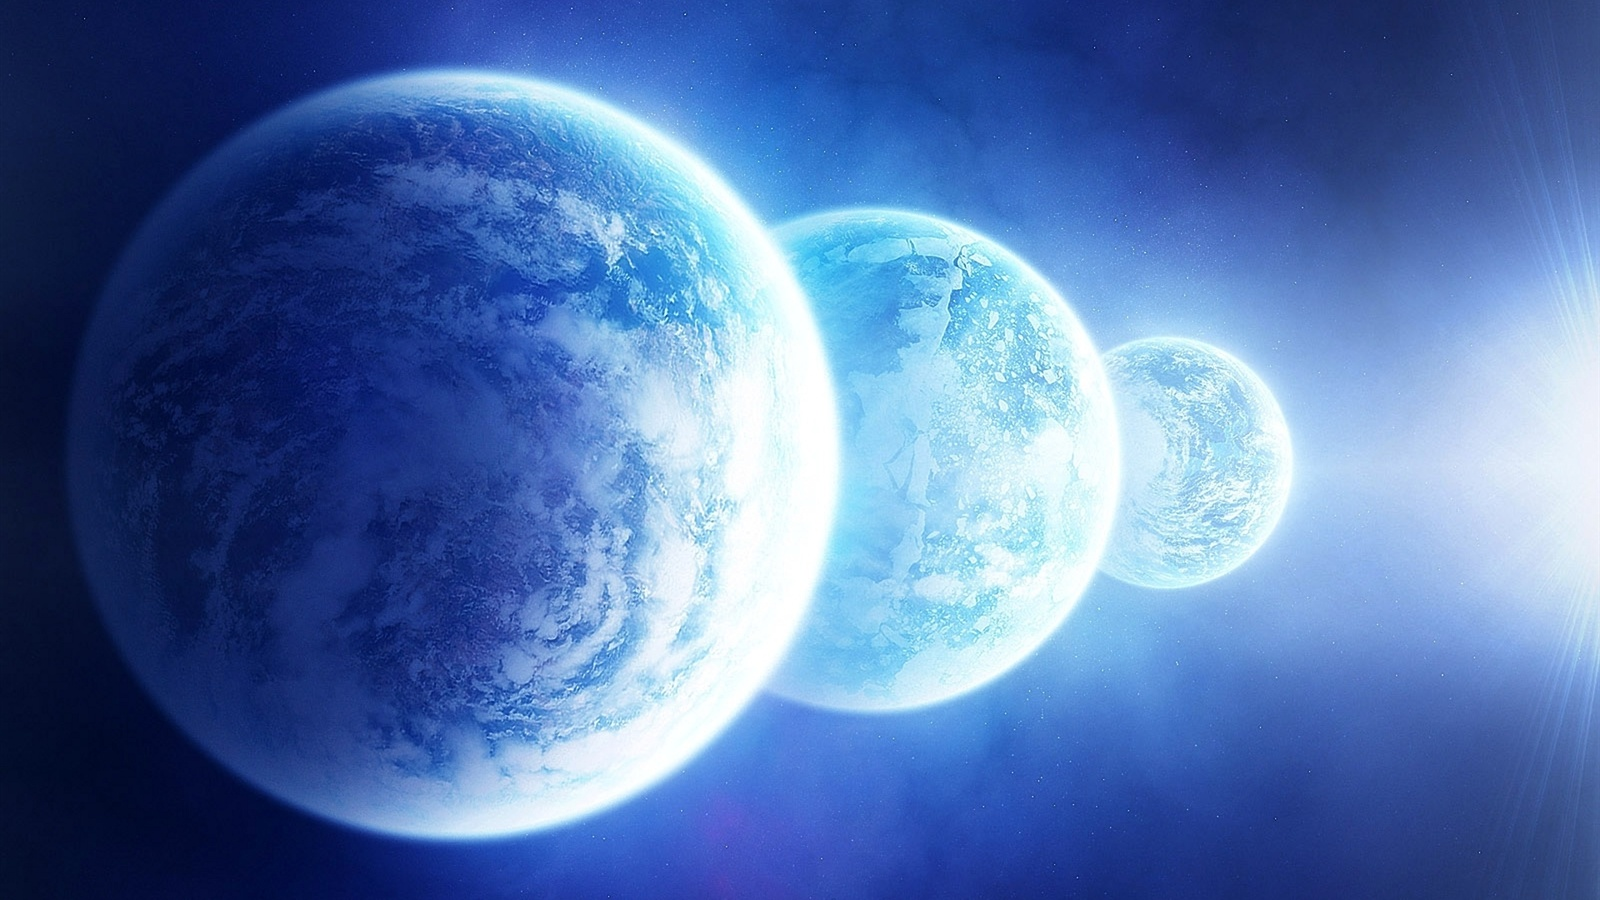 Three blue planet wallpaper - 1600x900